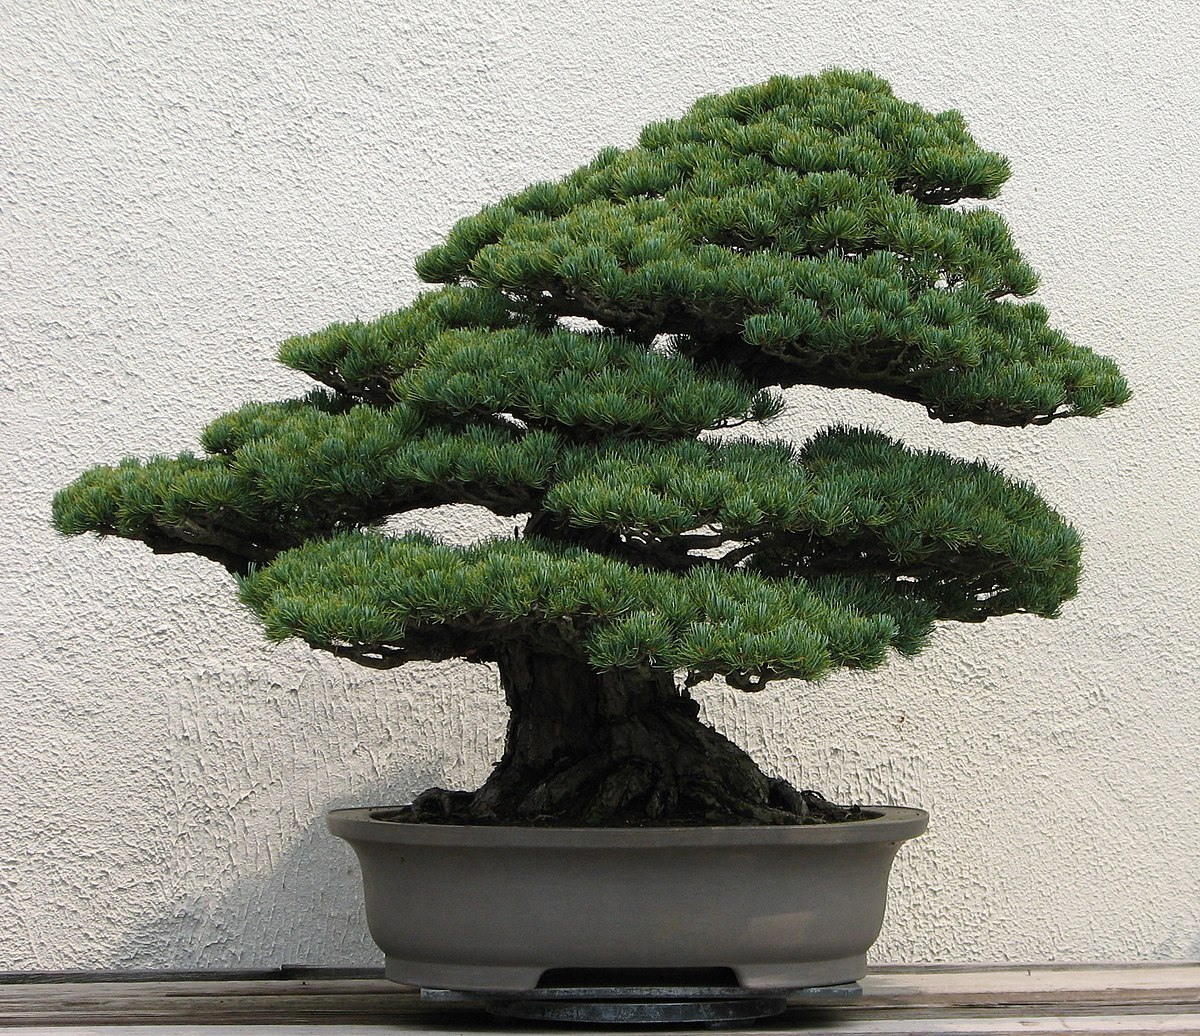 Bonsai wikipedia for Japanese garden plants and trees